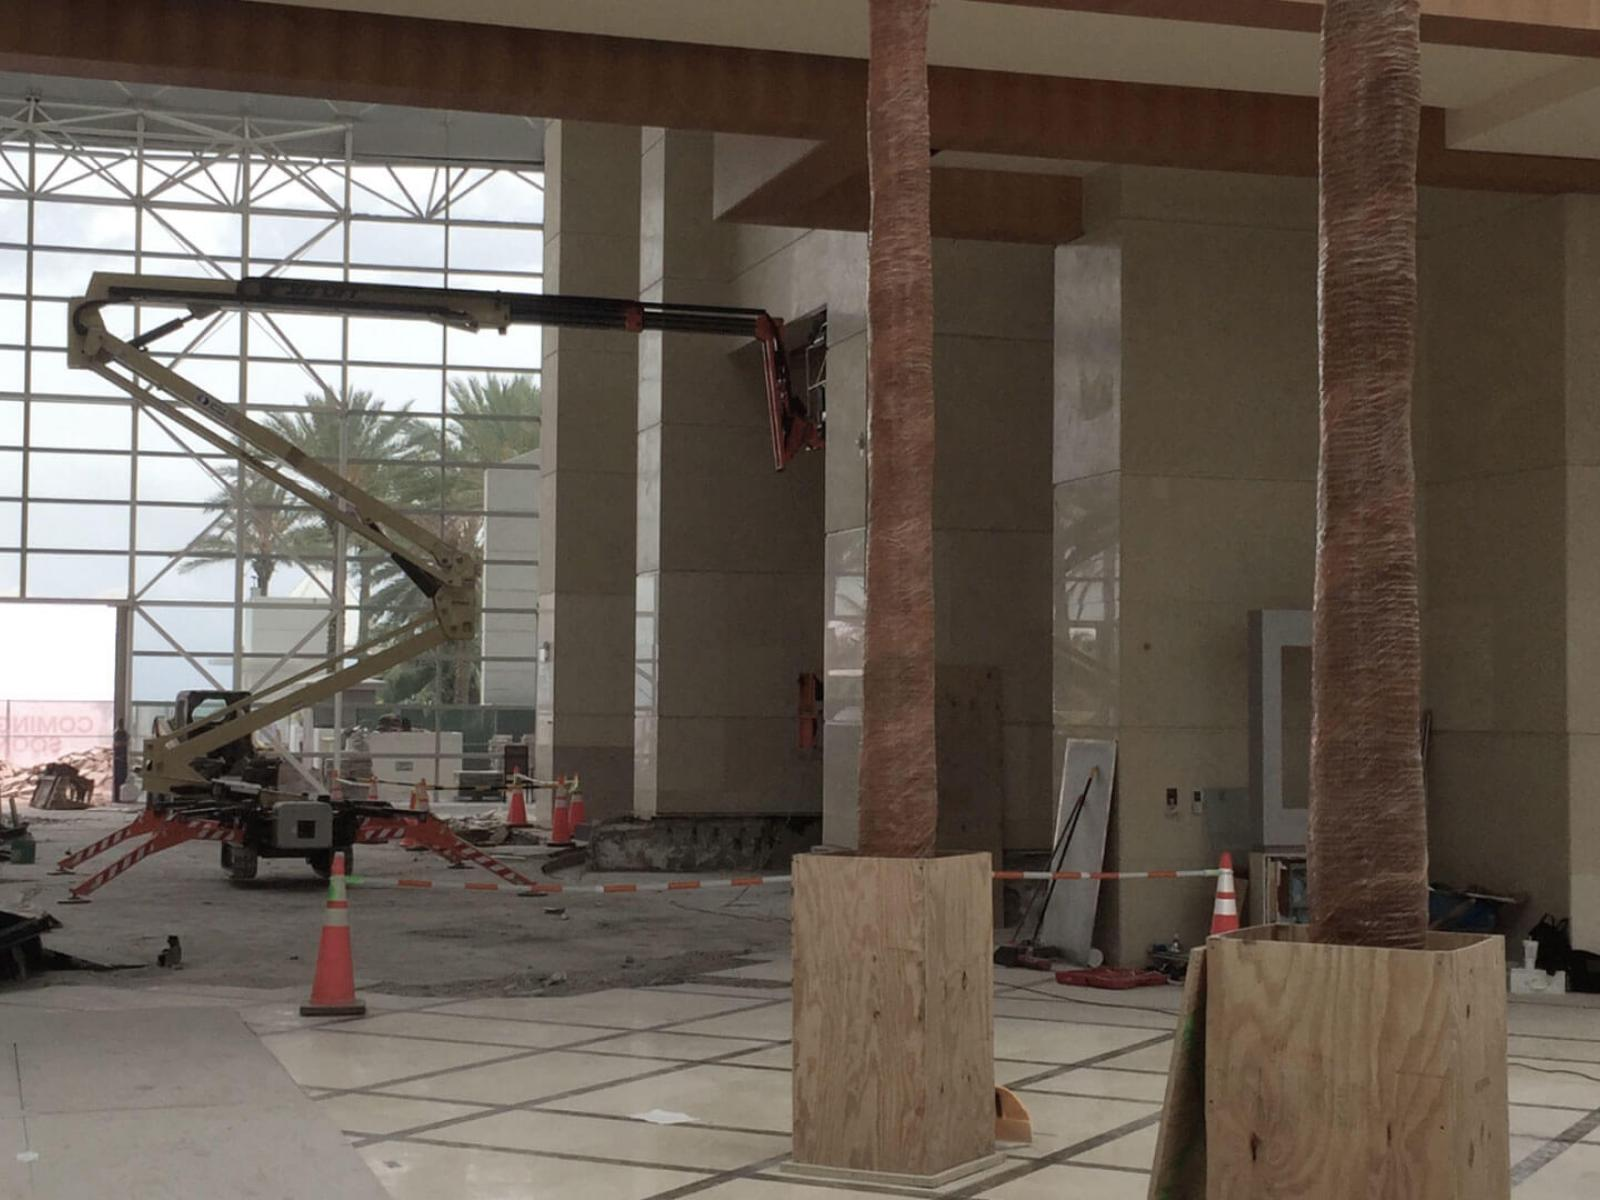 Pillars sheathed in protective covering in hotel lobby atrium under renovation